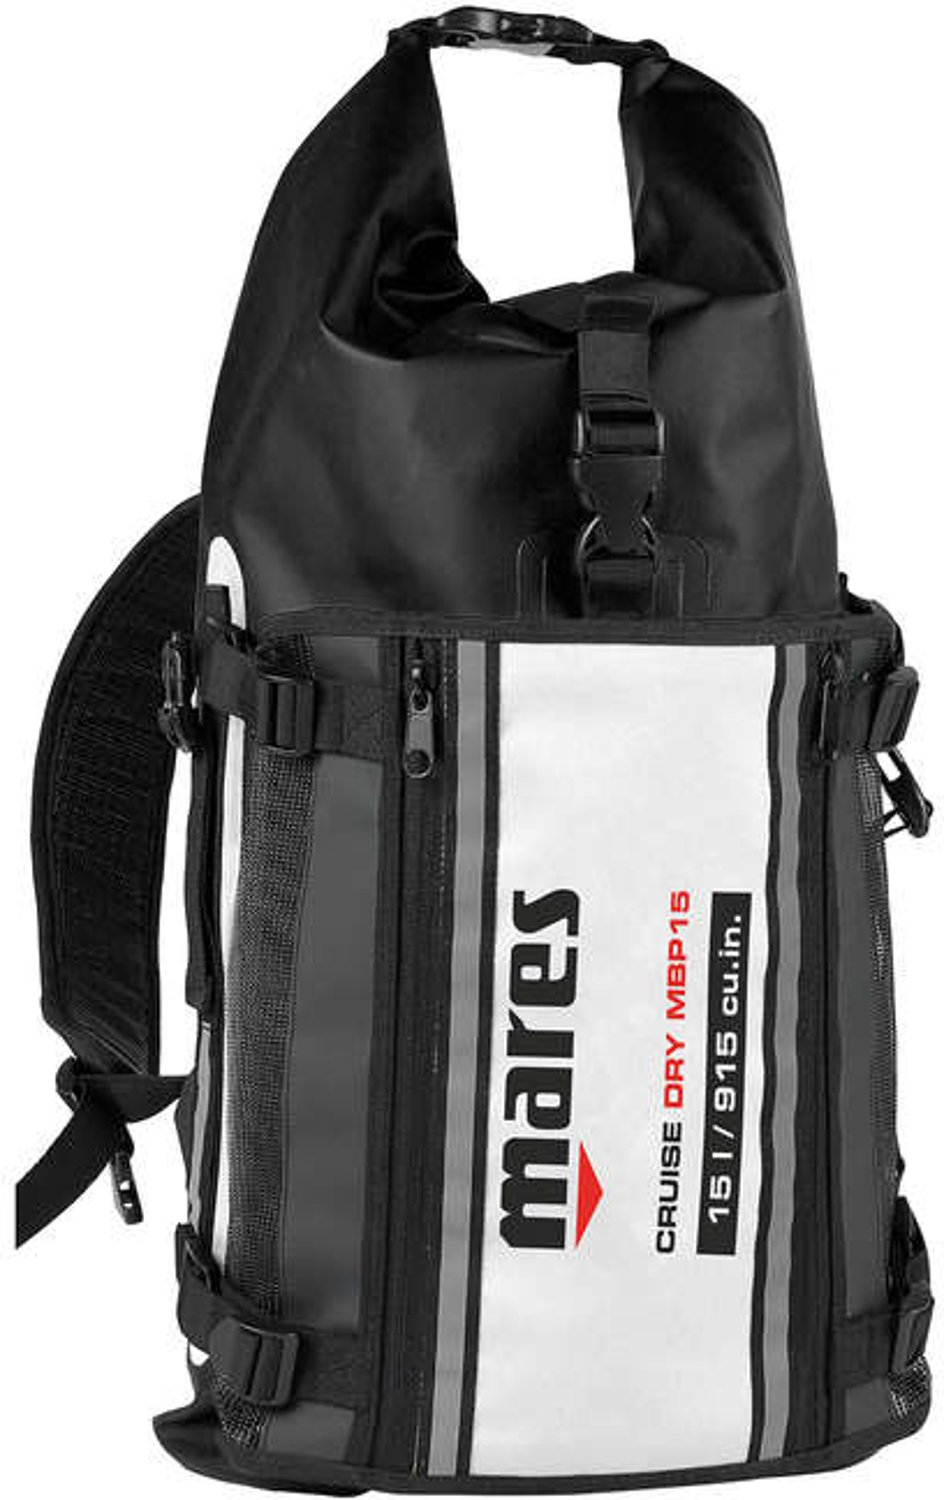 Mares 415451-BKWH Mares D55 Cruise Double Closure System Dry Bag, Black/White, 55 L